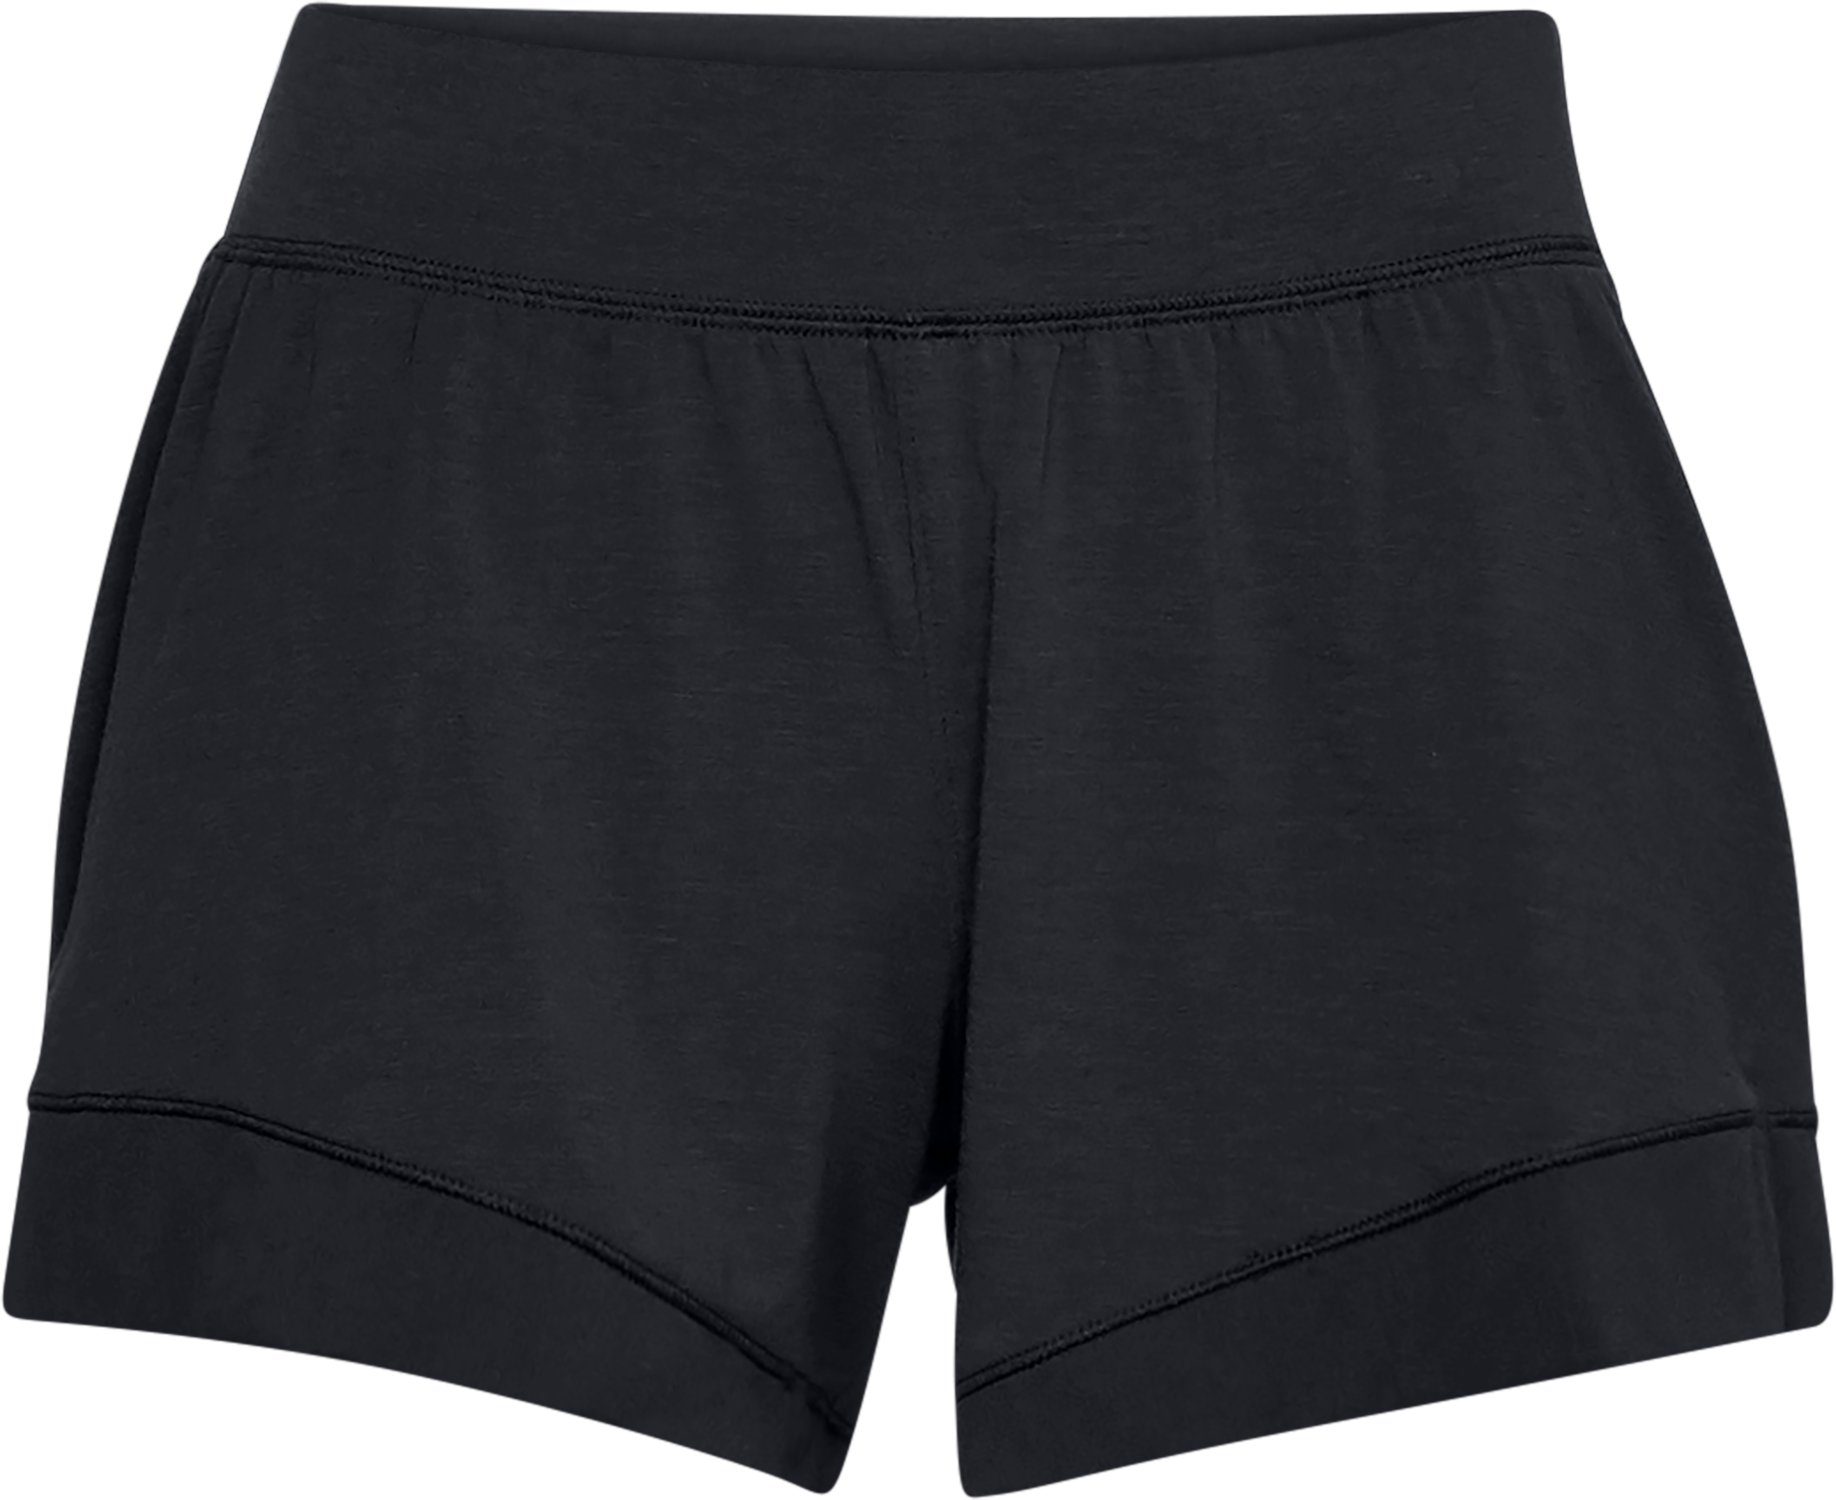 Women's Athlete Recovery Sleepwear Boxer Shorts, Black ,